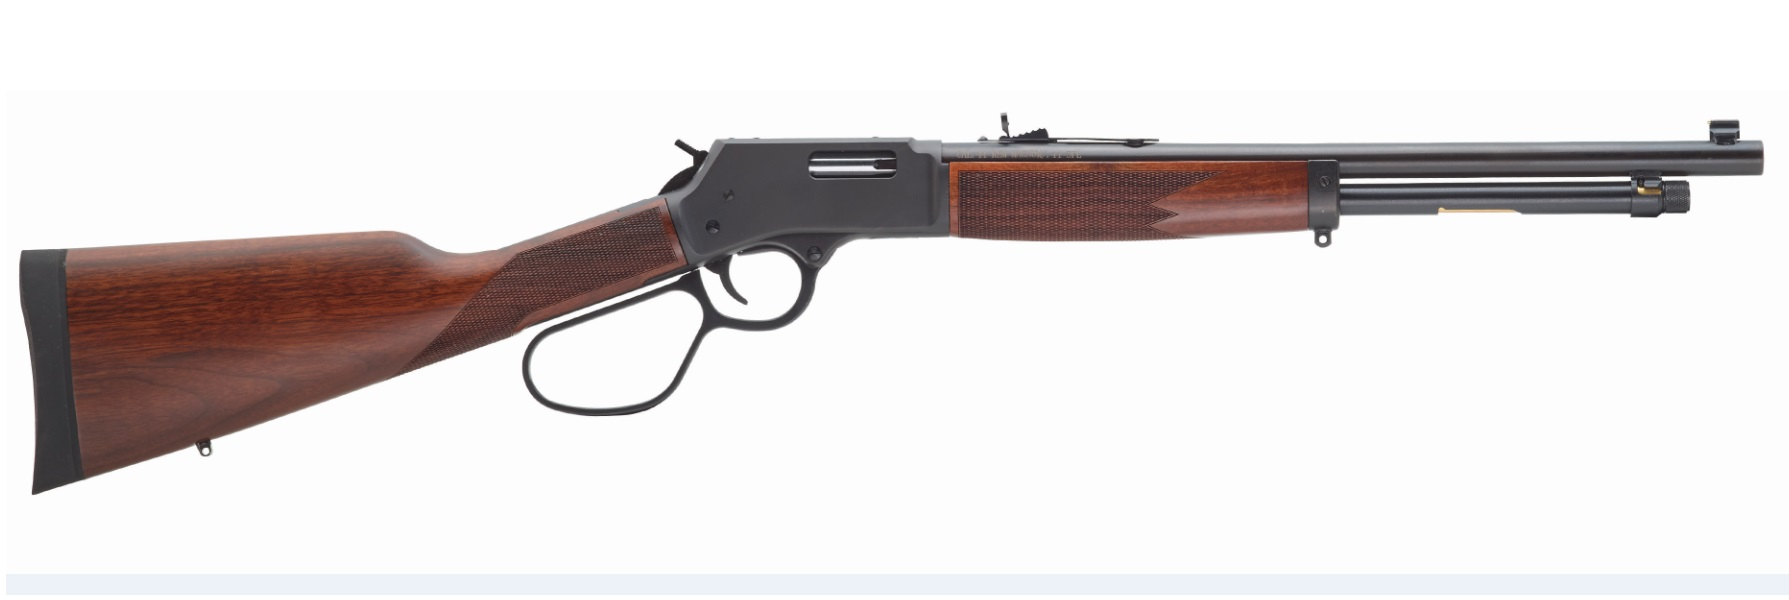 Henry Repeating Arms BIG BOY STEEL CARBINE 327 FEDERAL MAGNUM